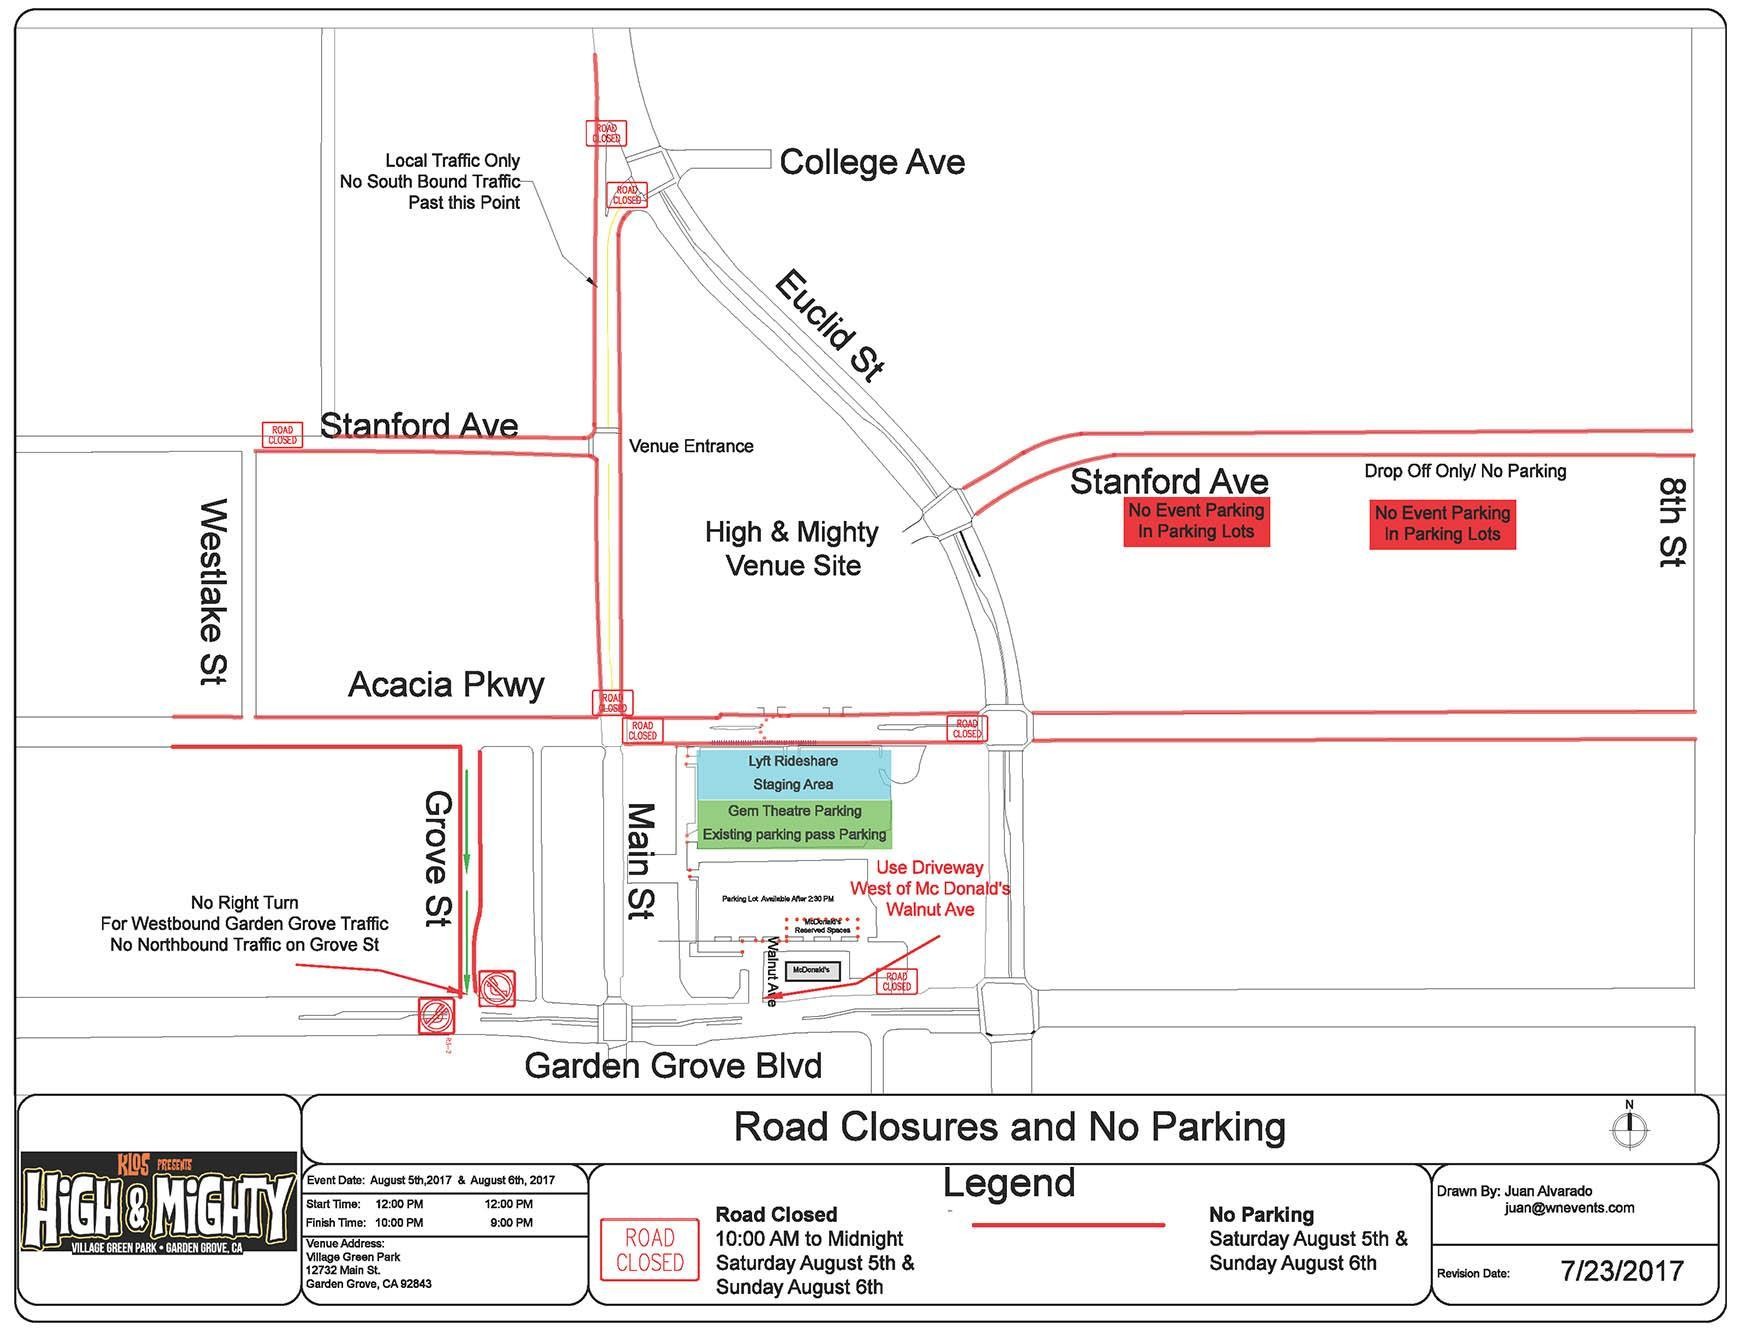 Road Closures and No Parking Map for the High and Mighty Music Festival